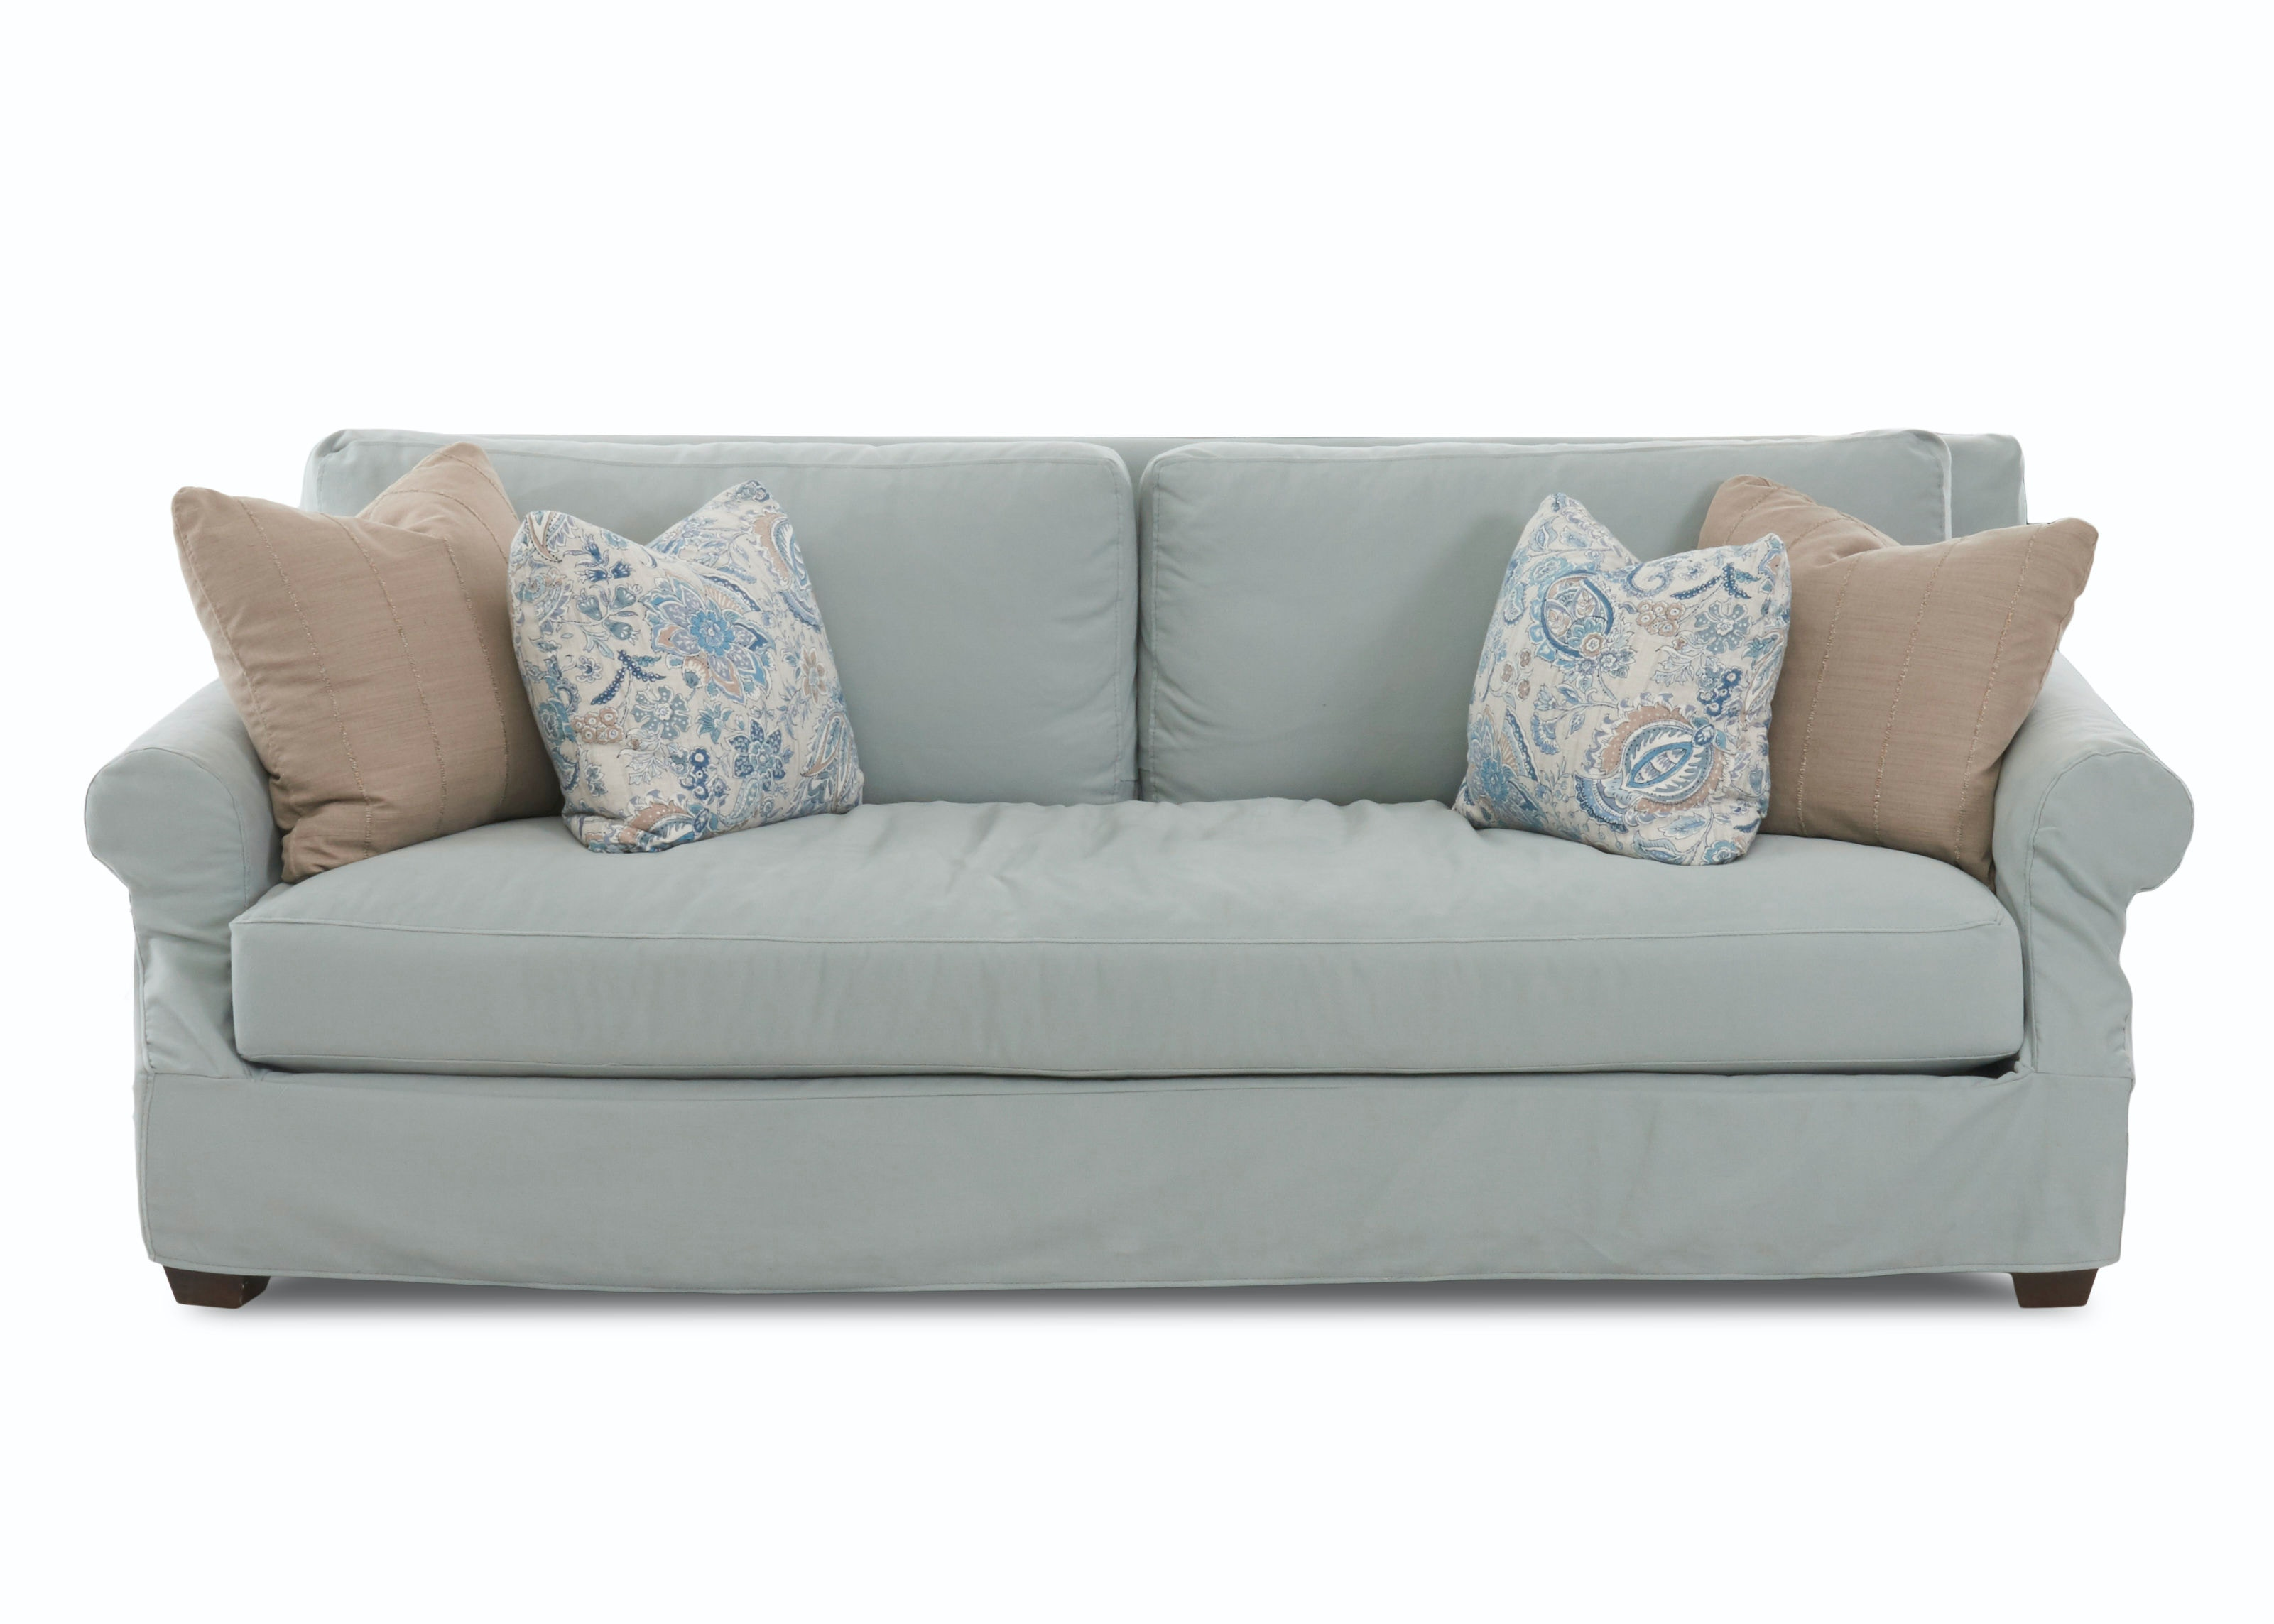 sofas unlimited mechanicsburg pa leather sofa cleaners indianapolis klaussner living room barrett slipcover d83100 s